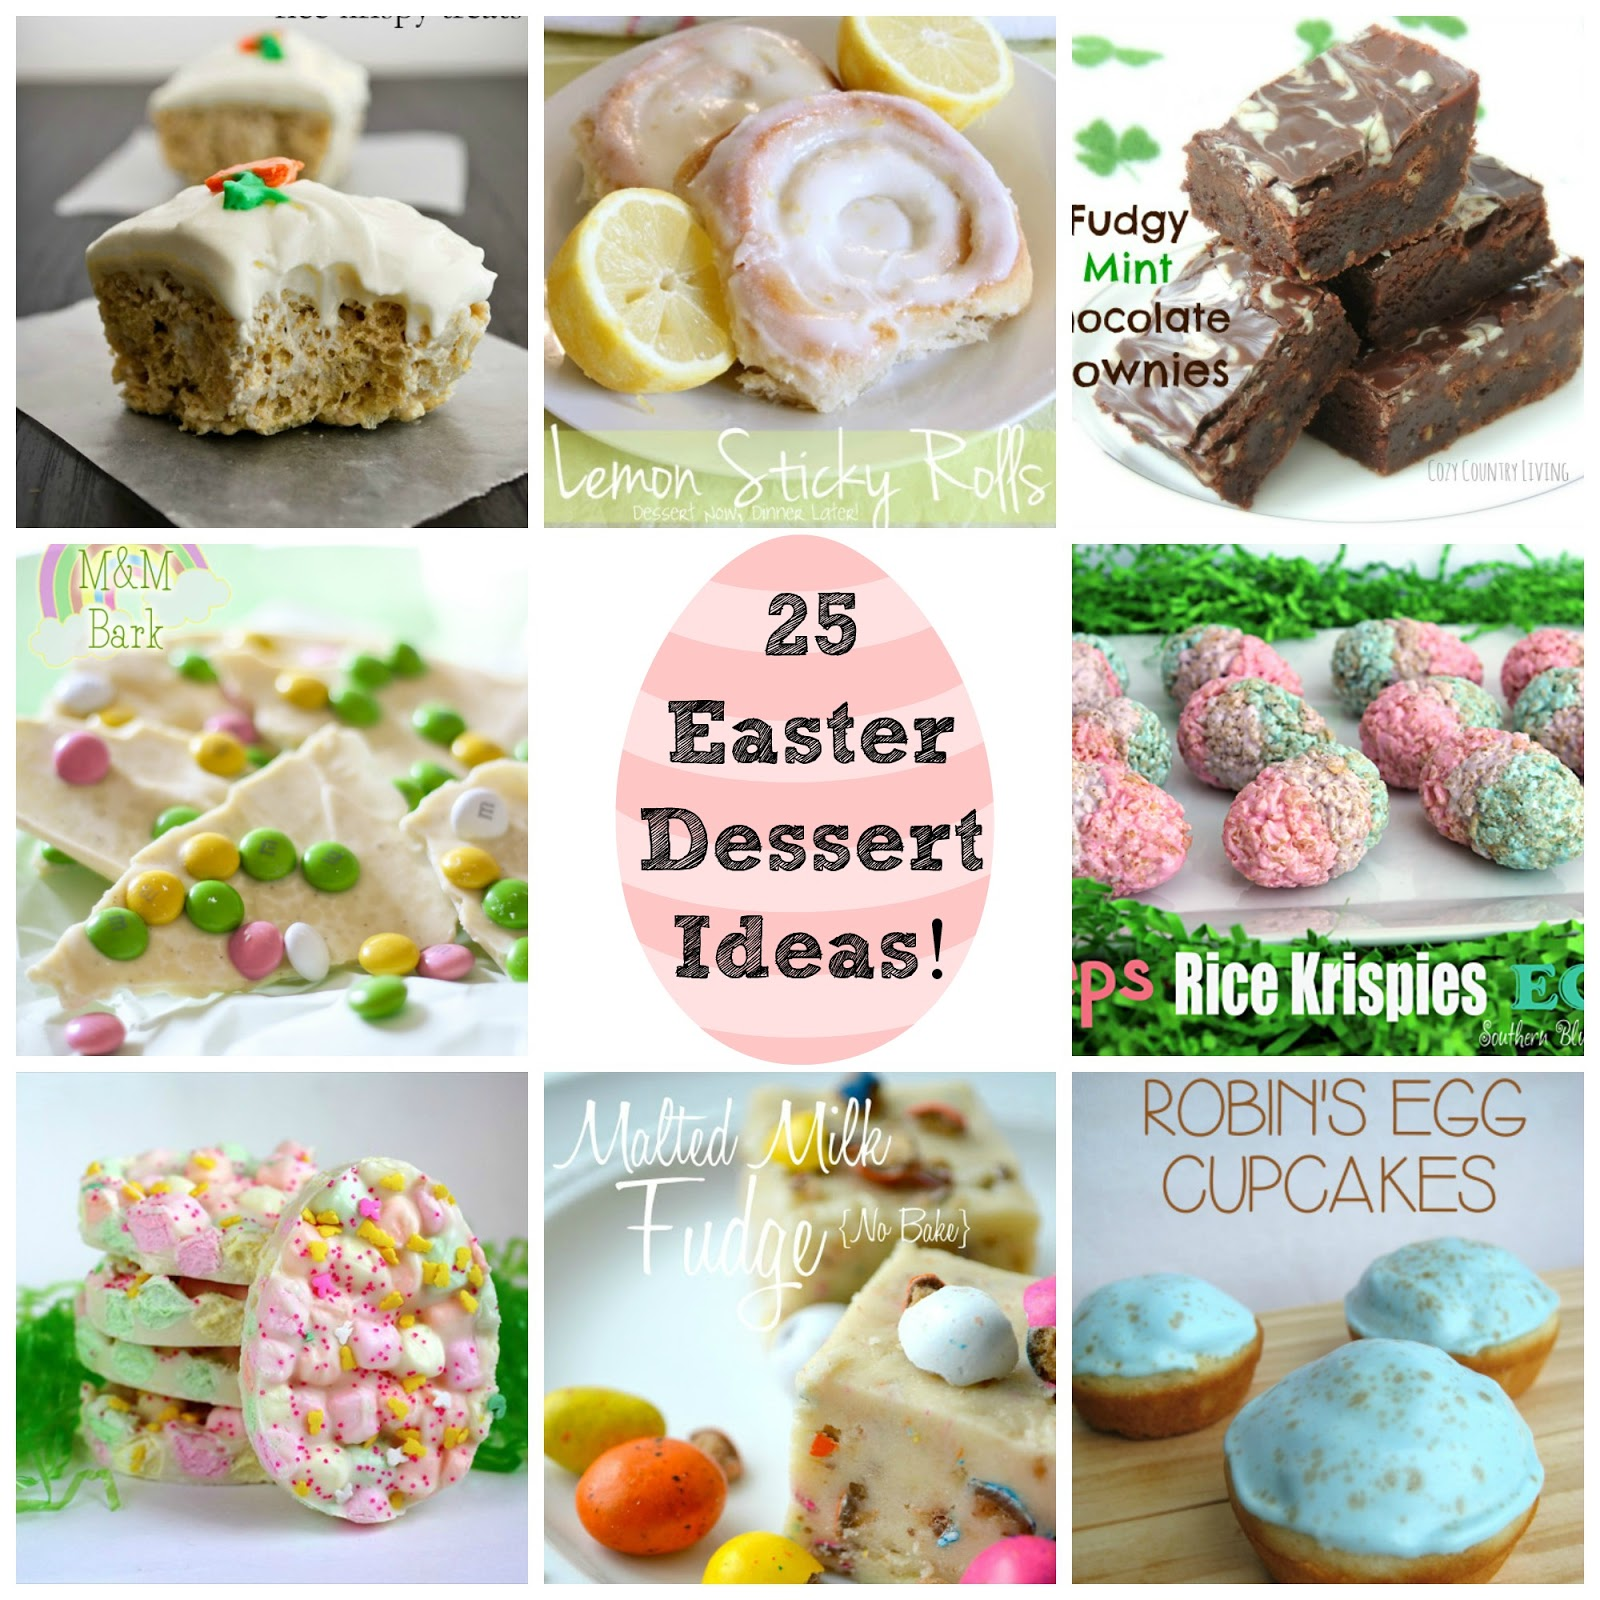 The best blog recipes 25 easter dessert ideas round up for Good desserts for easter